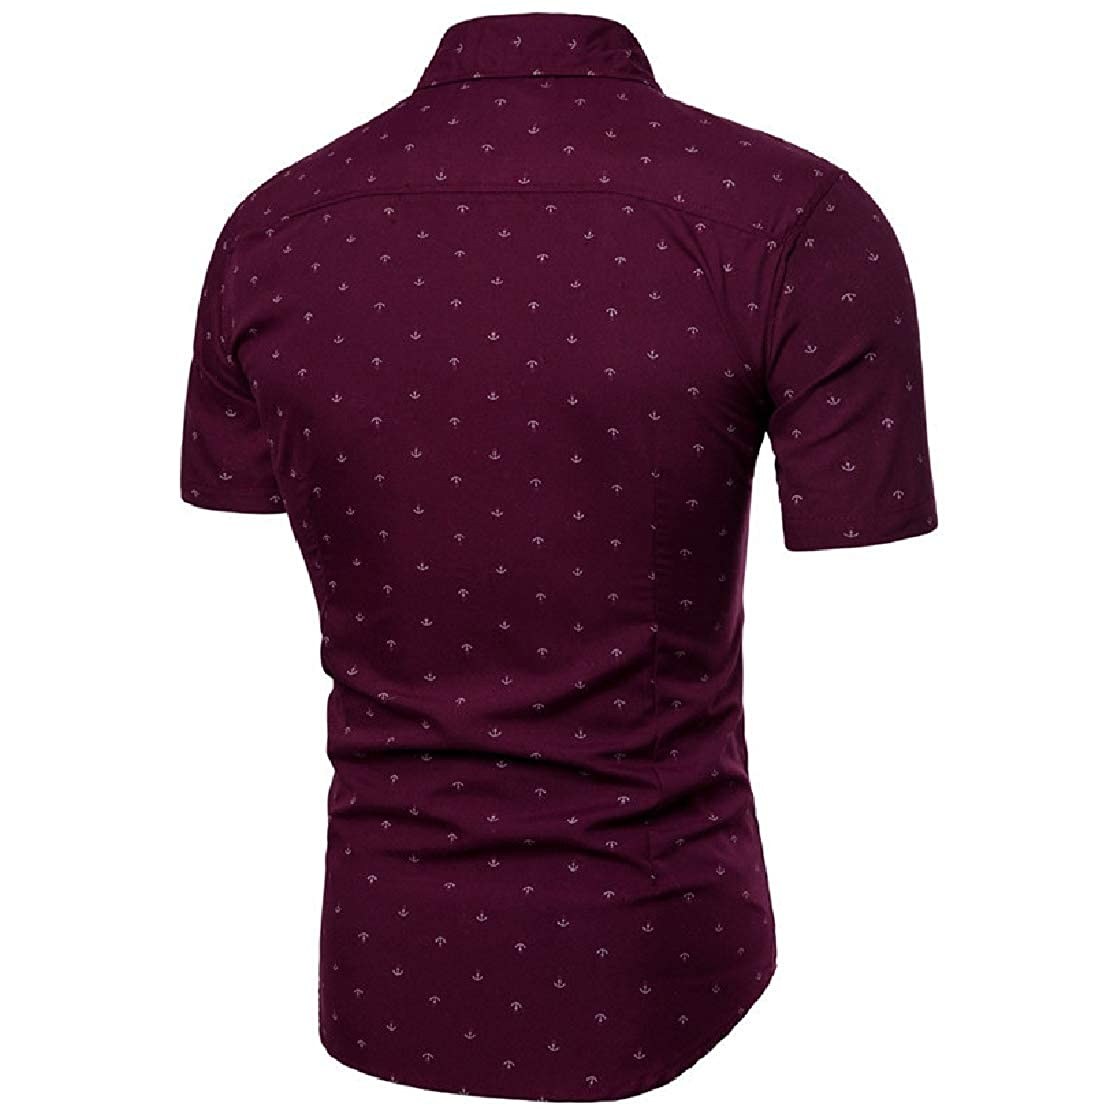 YUNY Men Casual Printing Turn Down Collar Short Sleeve Fitted Shirts Wine Red 2XL